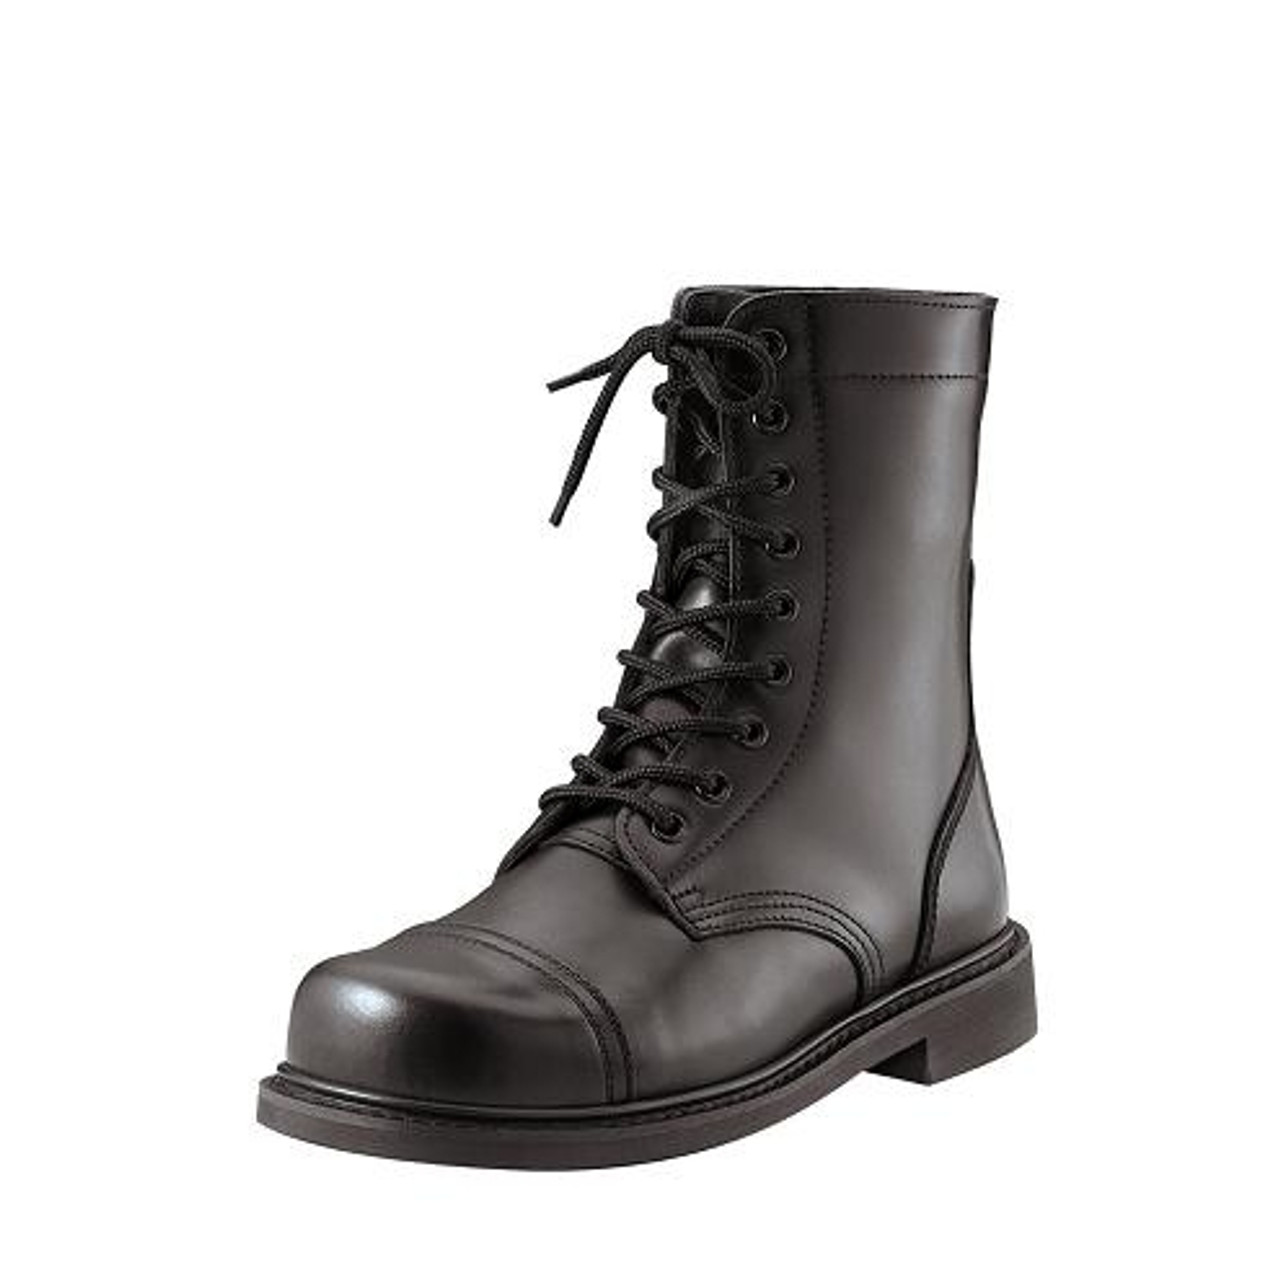 G.I. Type Combat Boot from Hessen Tactical